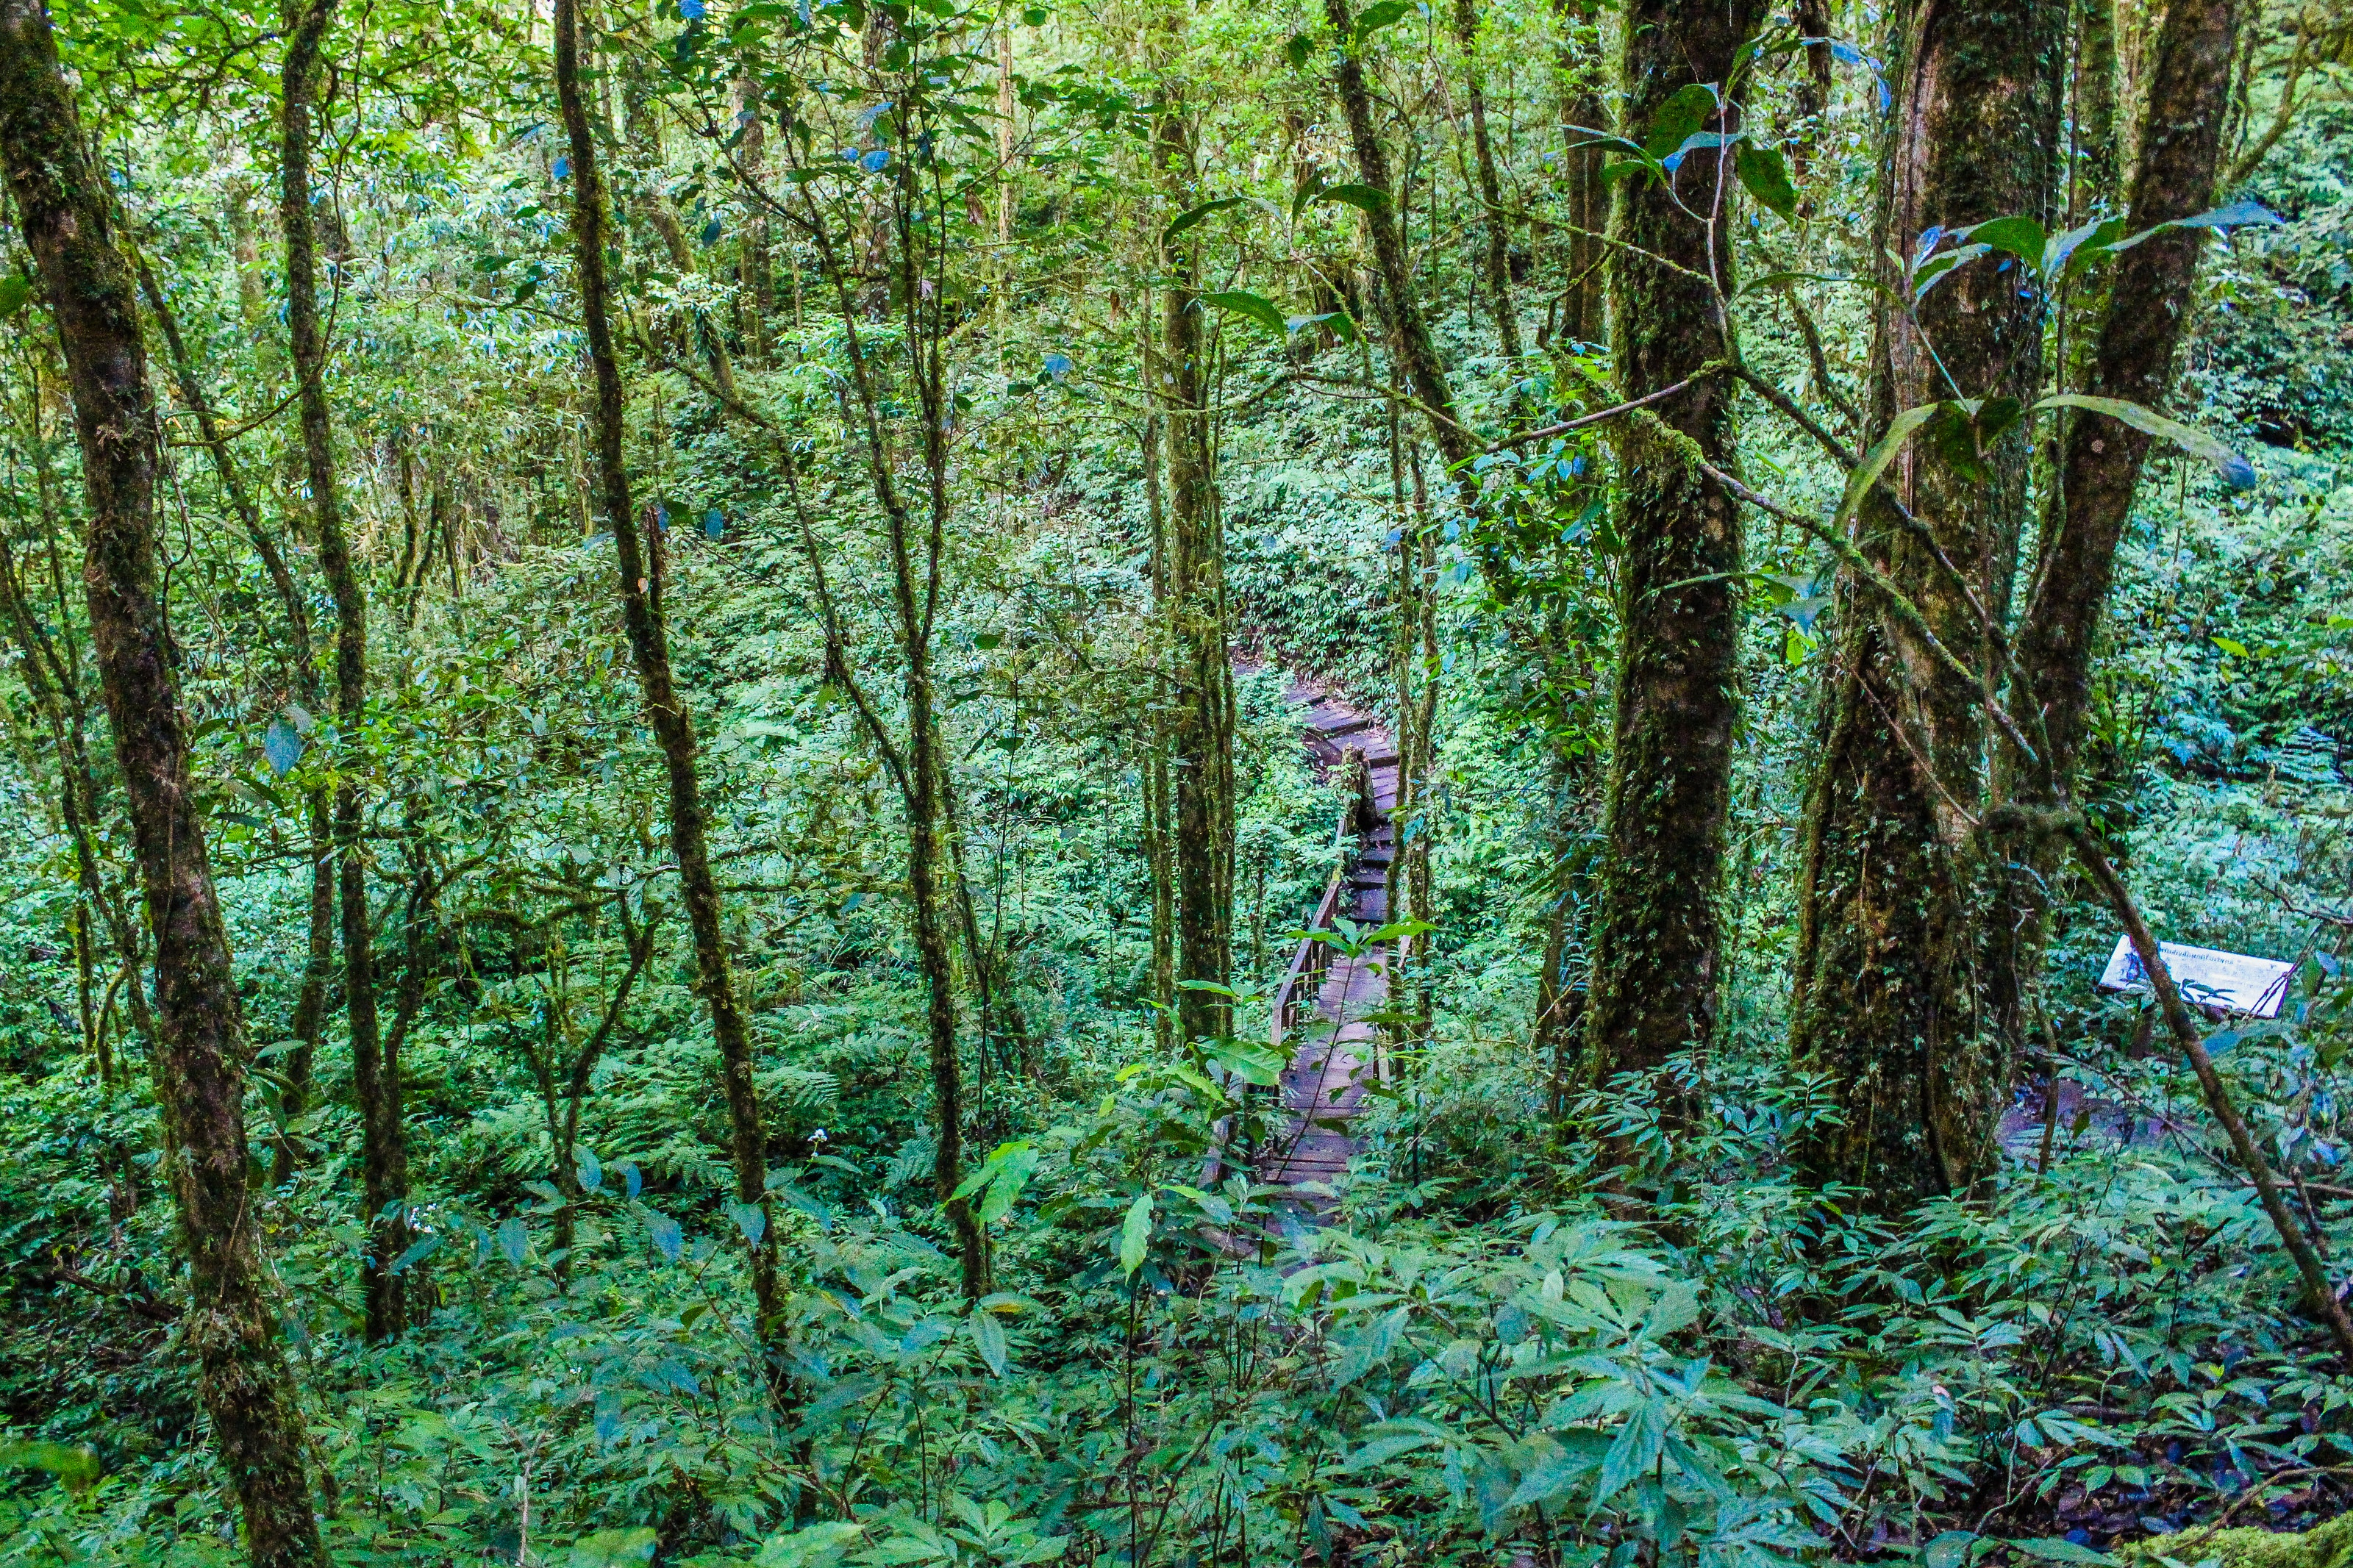 Forest with green plants and trees photo